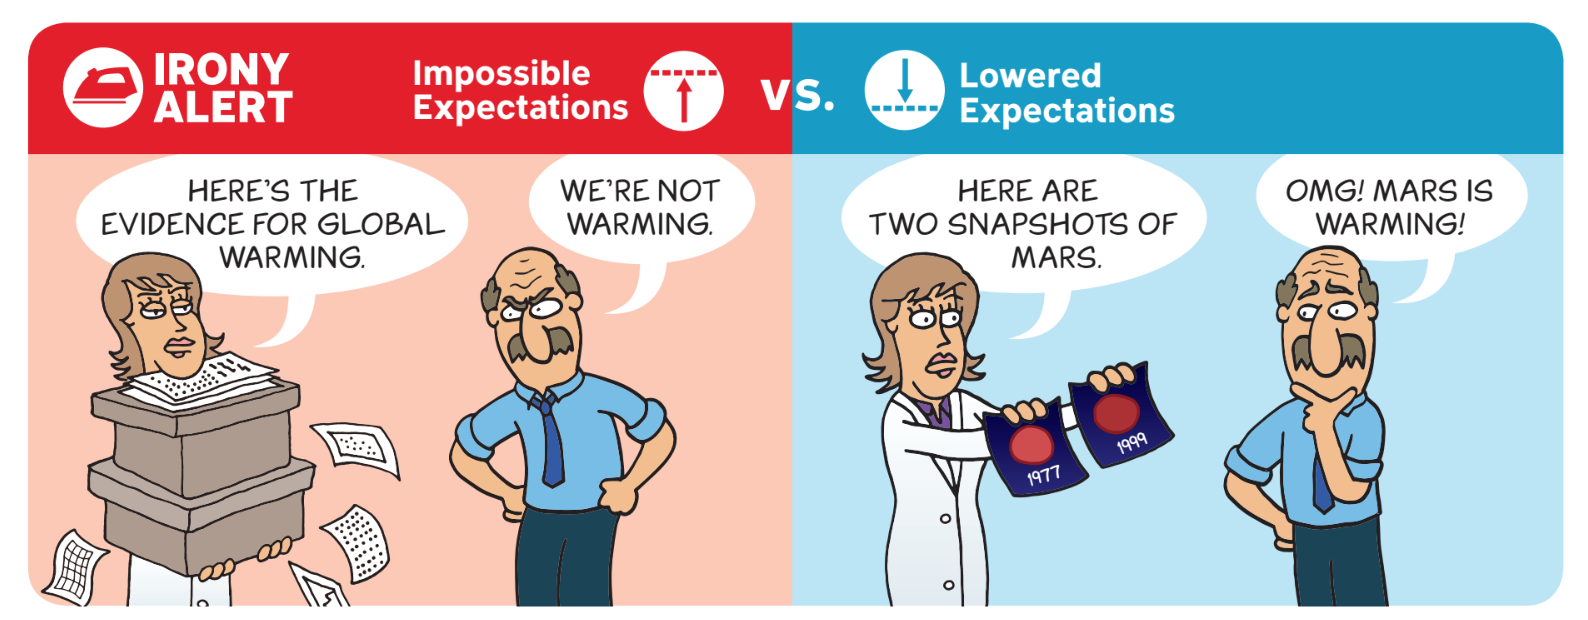 The impossible expectations applied to climate science